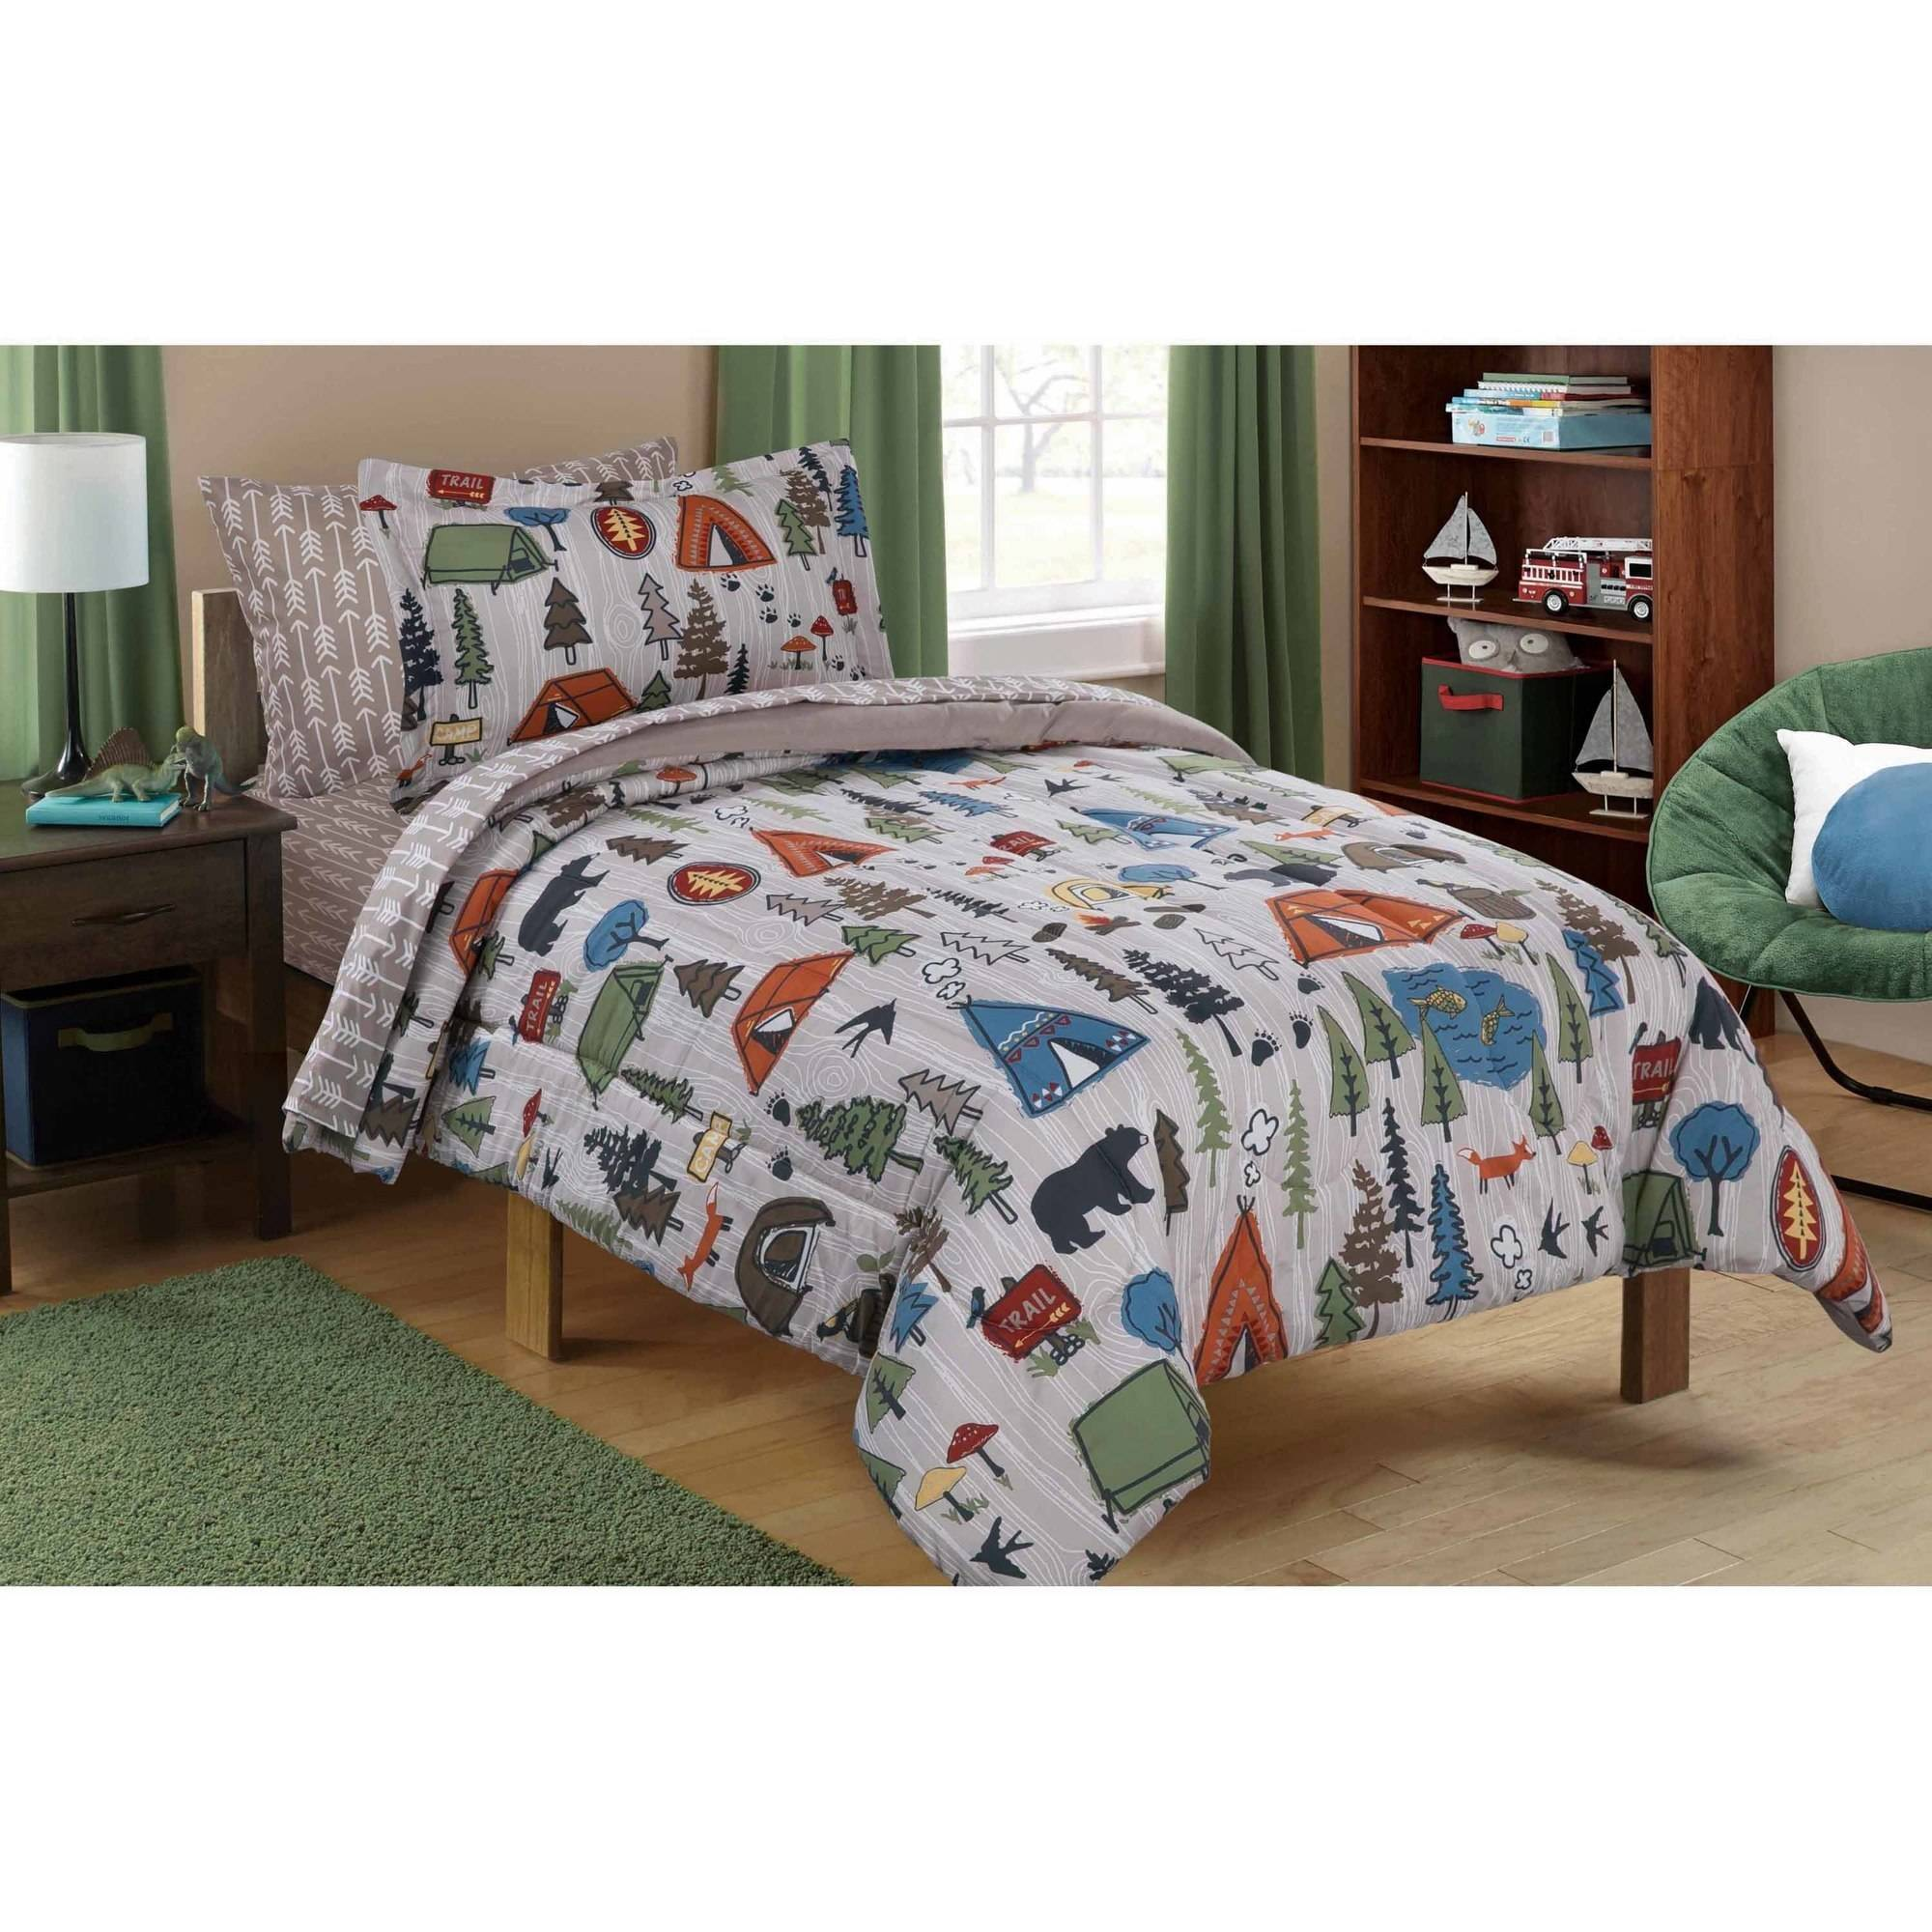 Amazing Mainstays Kids Camping Bed In A Bag Bedding Set   Walmart.com